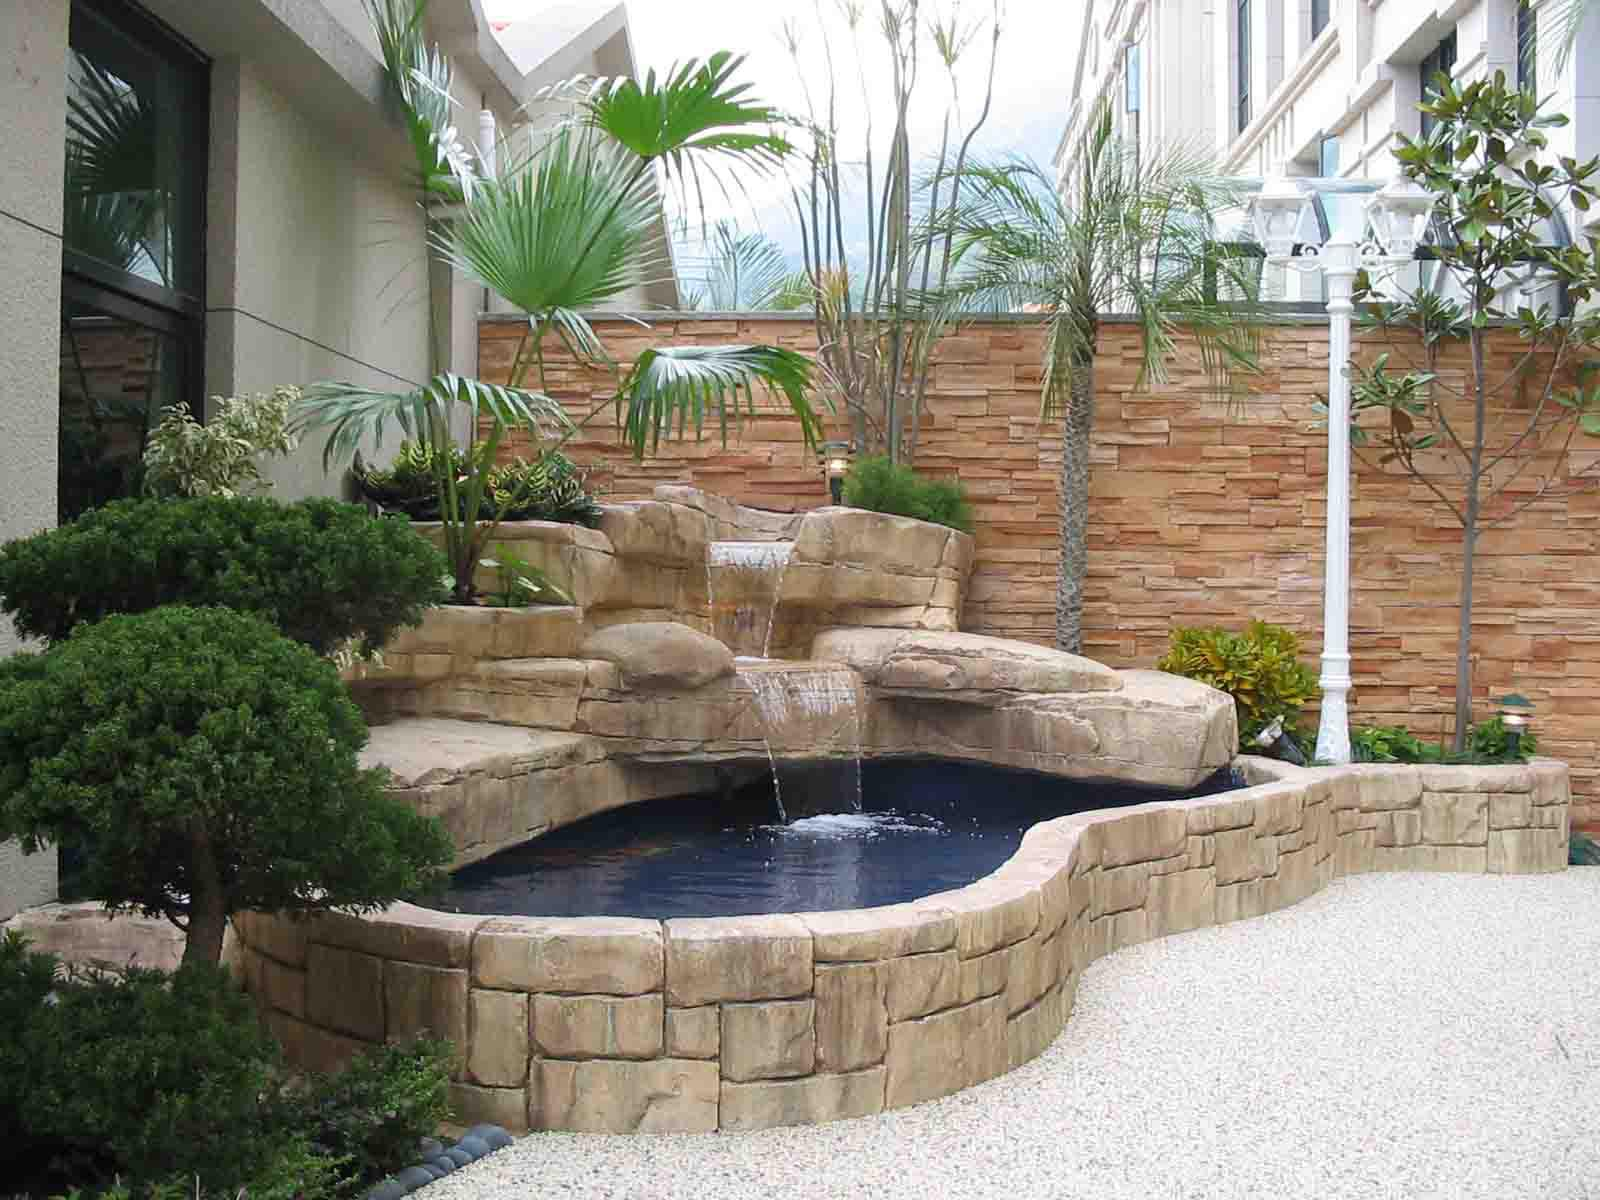 Fish pond garden design backyard design ideas for Garden design ideas 2016